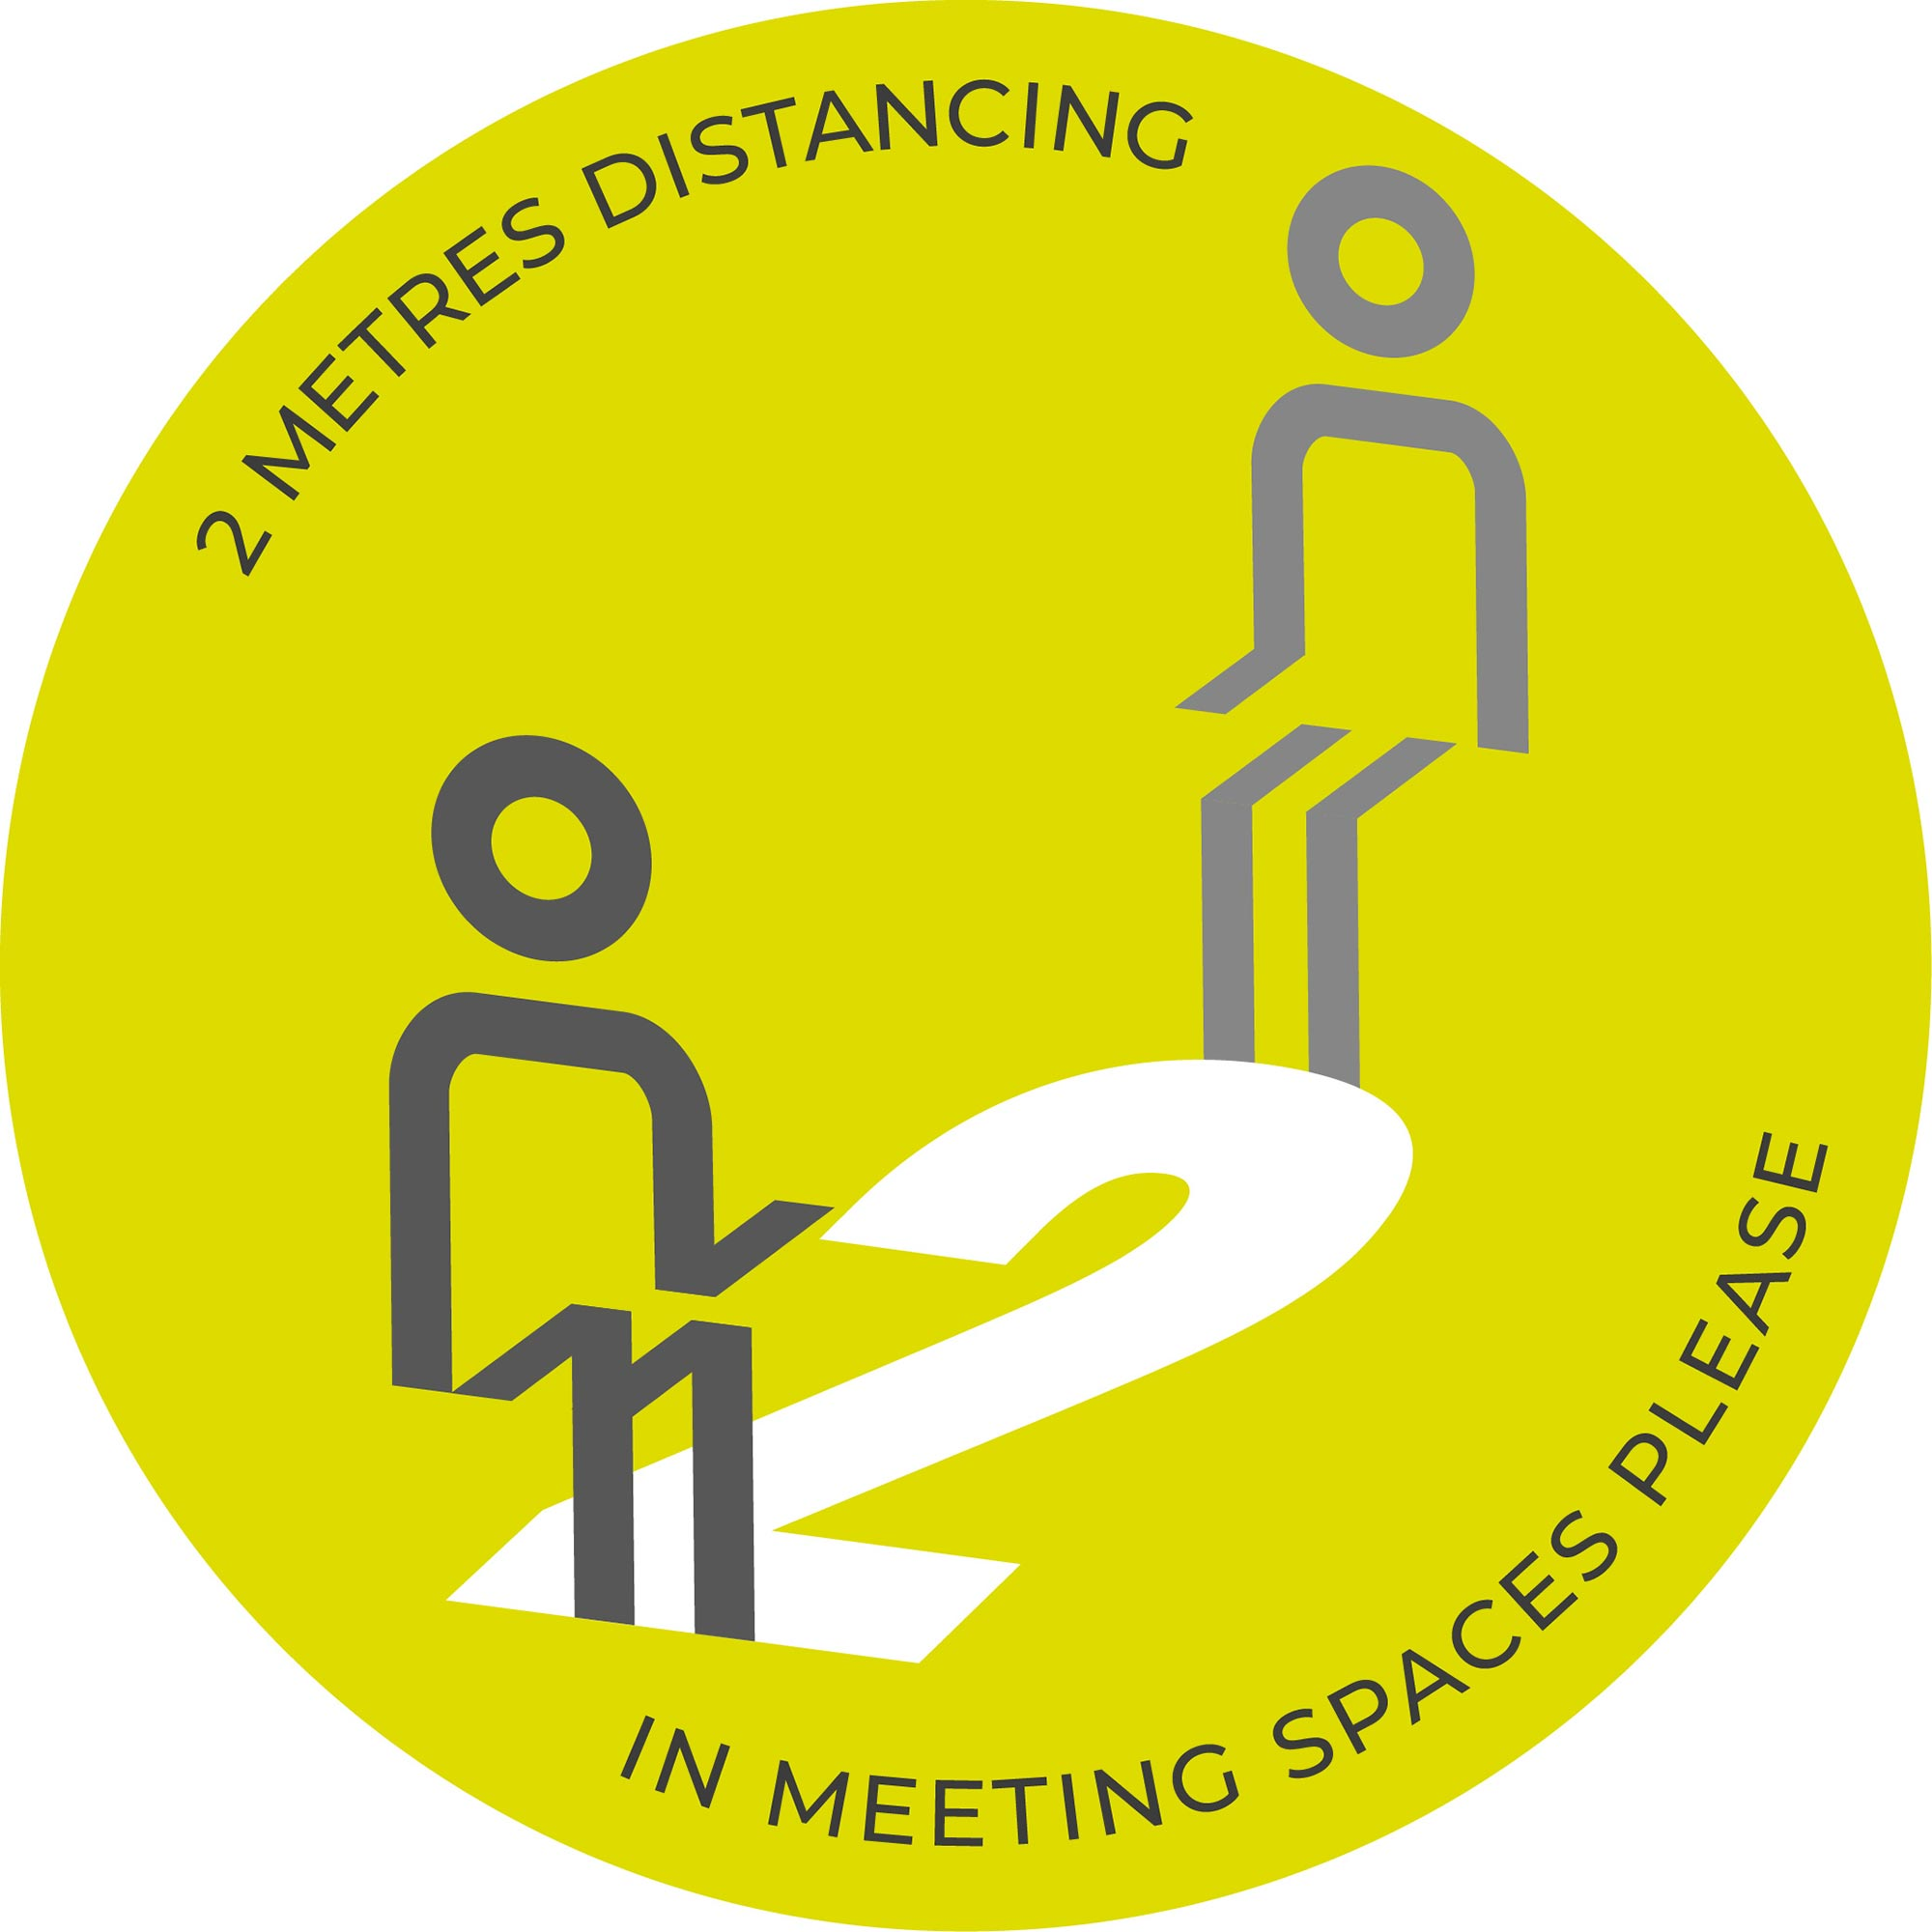 Meeting Spaces Distancing - Green